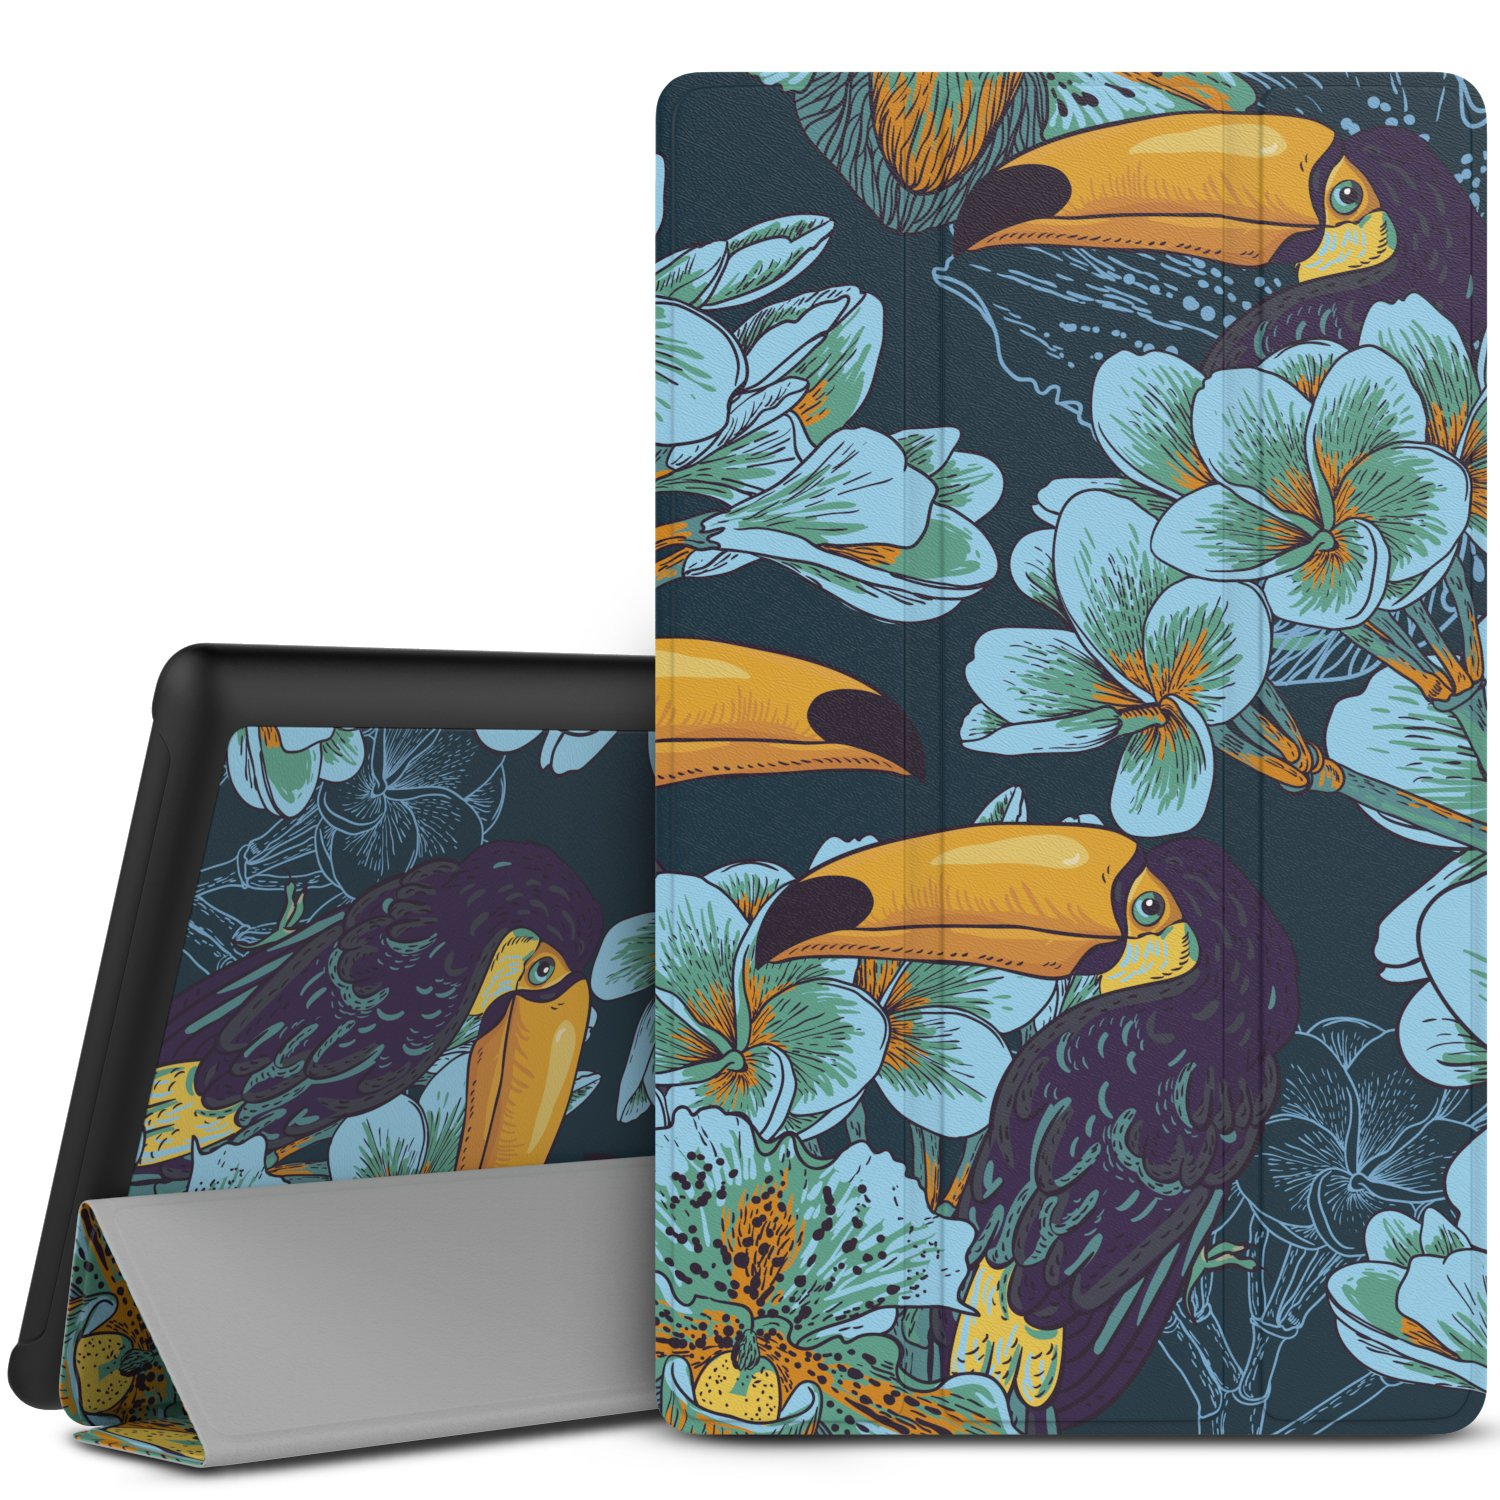 MoKo Case for Fire HD 10 Tablet (5th Generation, 2015 Release) - Slim Lightweight Shell Stand Cover with Auto Wake / Sleep for Amazon Fire HD 10.1 Inch Tablet, Toucan Bird